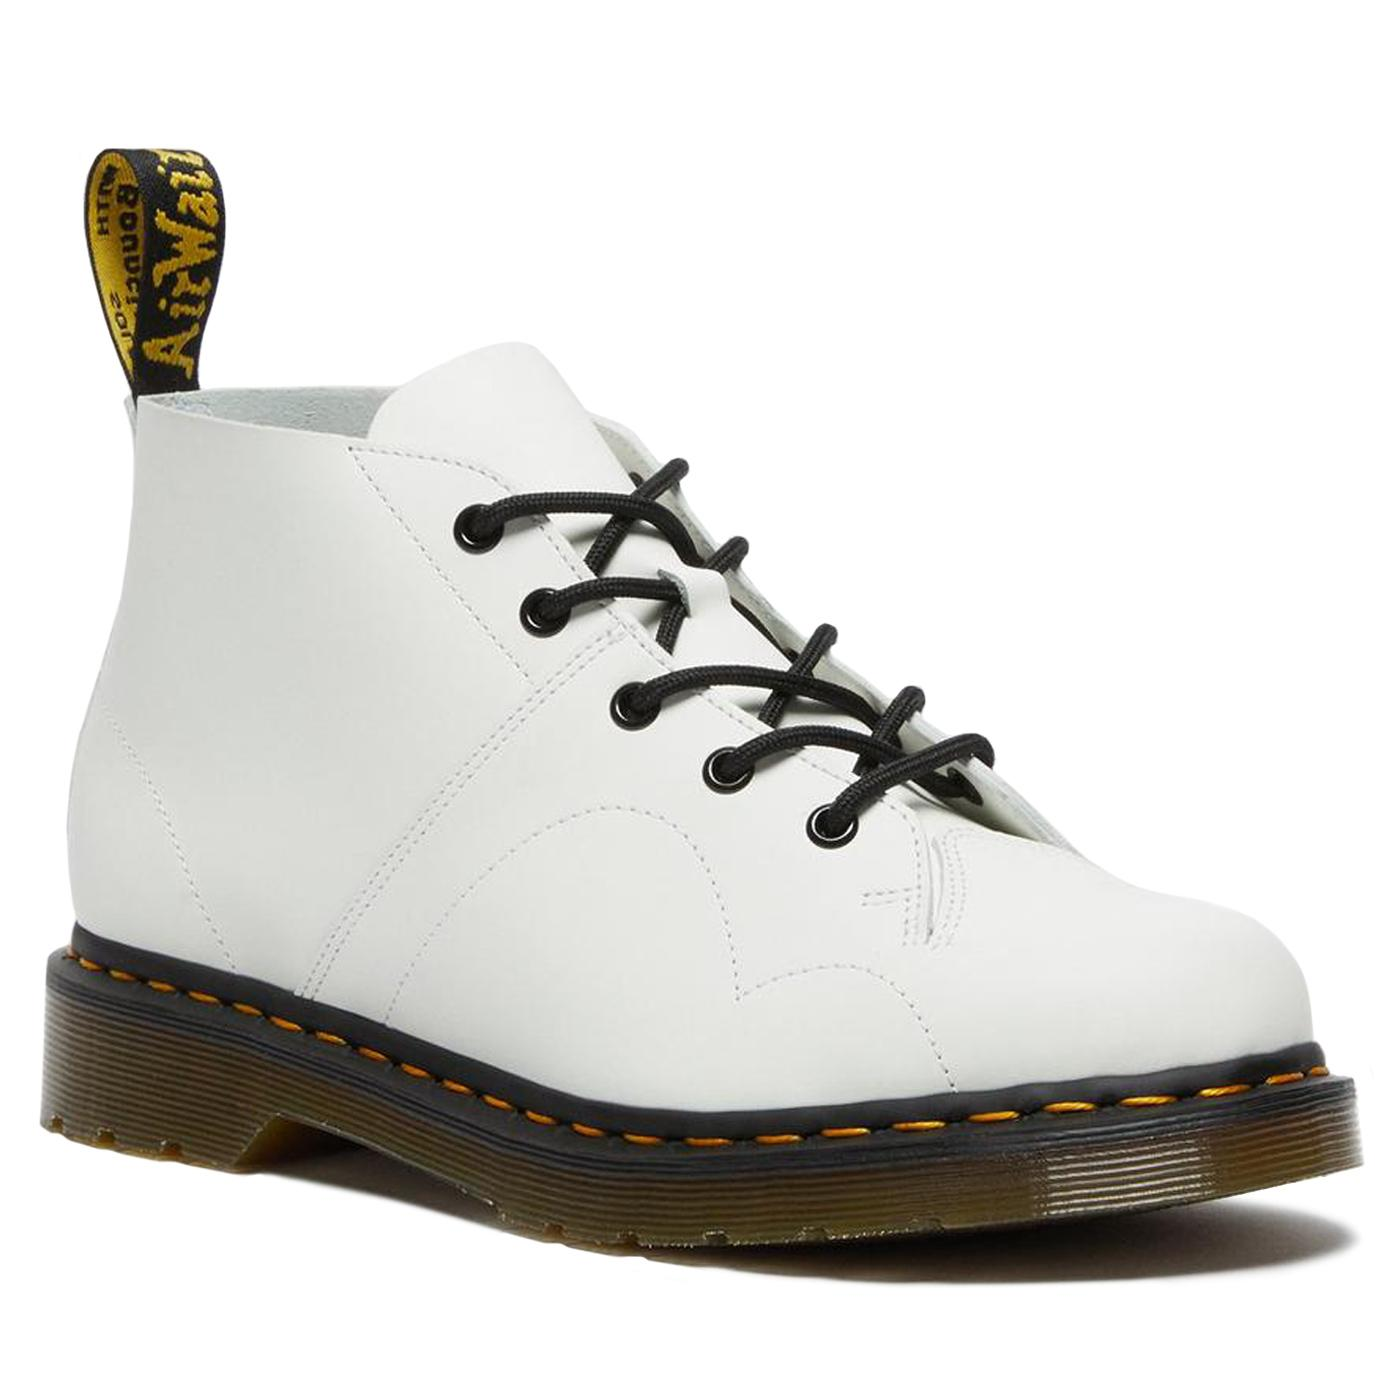 Church DR MARTENS Smooth Leather Mod Monkey Boots